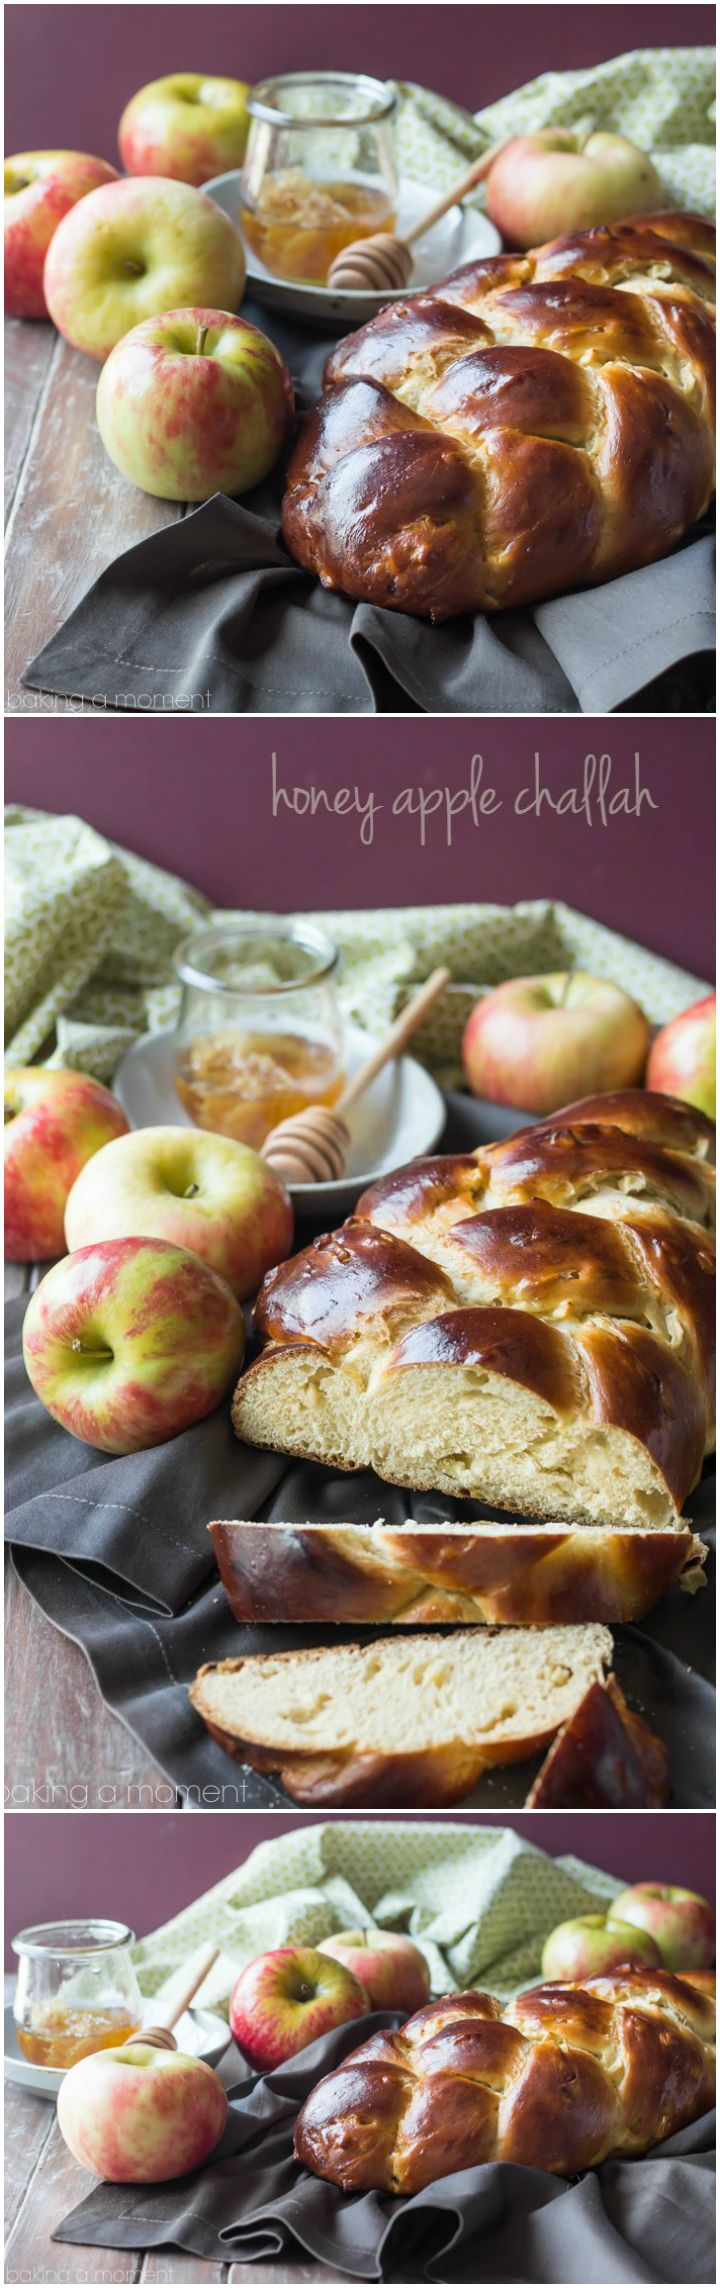 Honey Apple Challah | Bread recipes, Inspiration and New ...